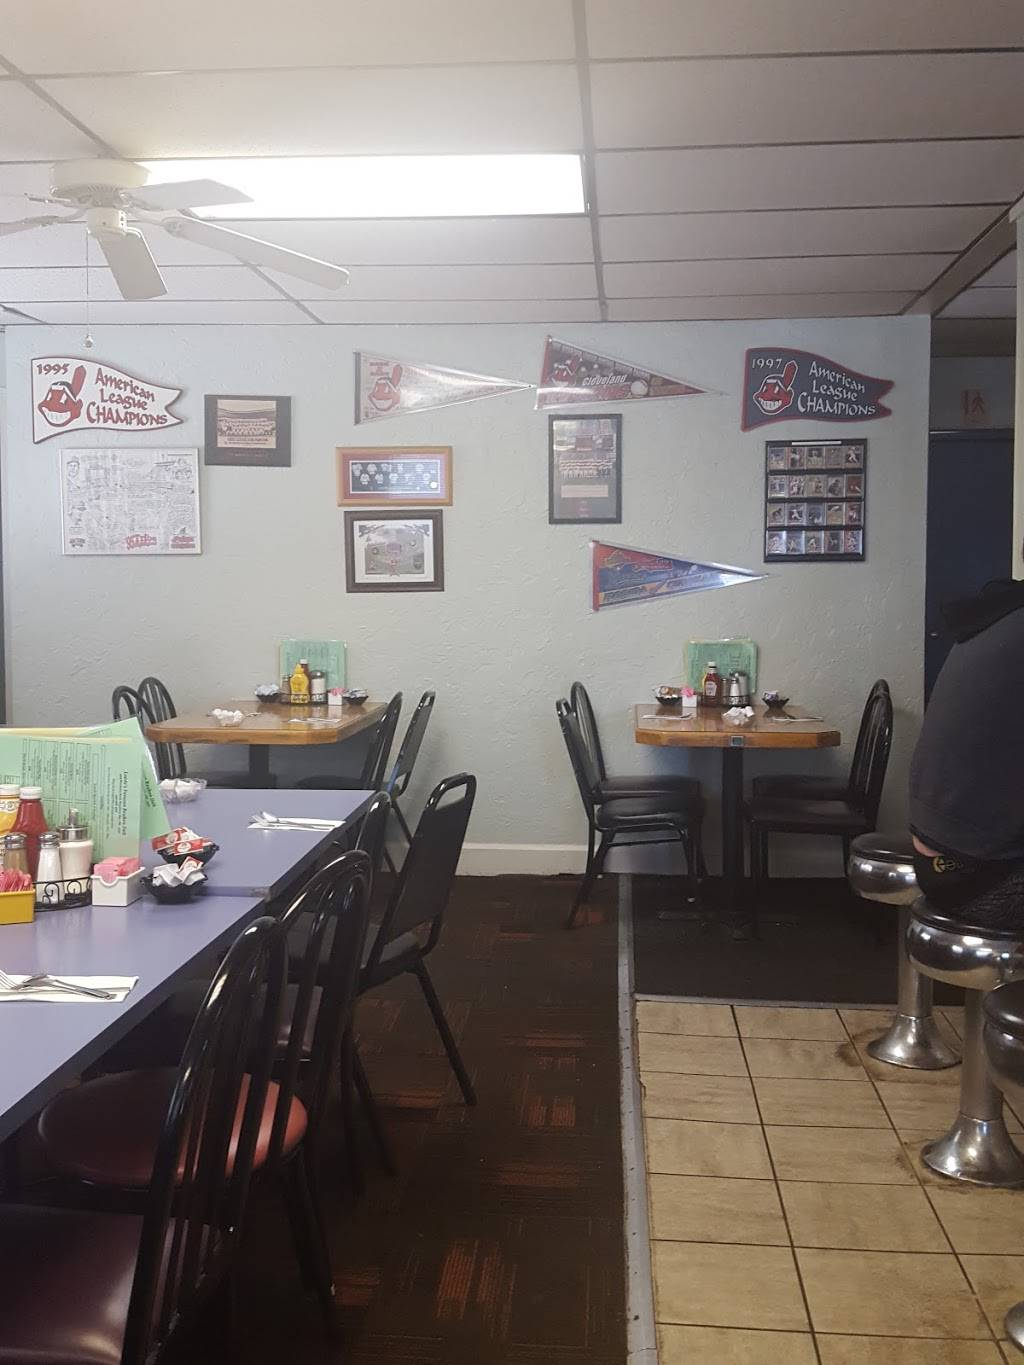 Loedes Famous Reuben Deli | restaurant | 9265 Broadview Rd, Broadview Heights, OH 44147, USA | 4405264713 OR +1 440-526-4713